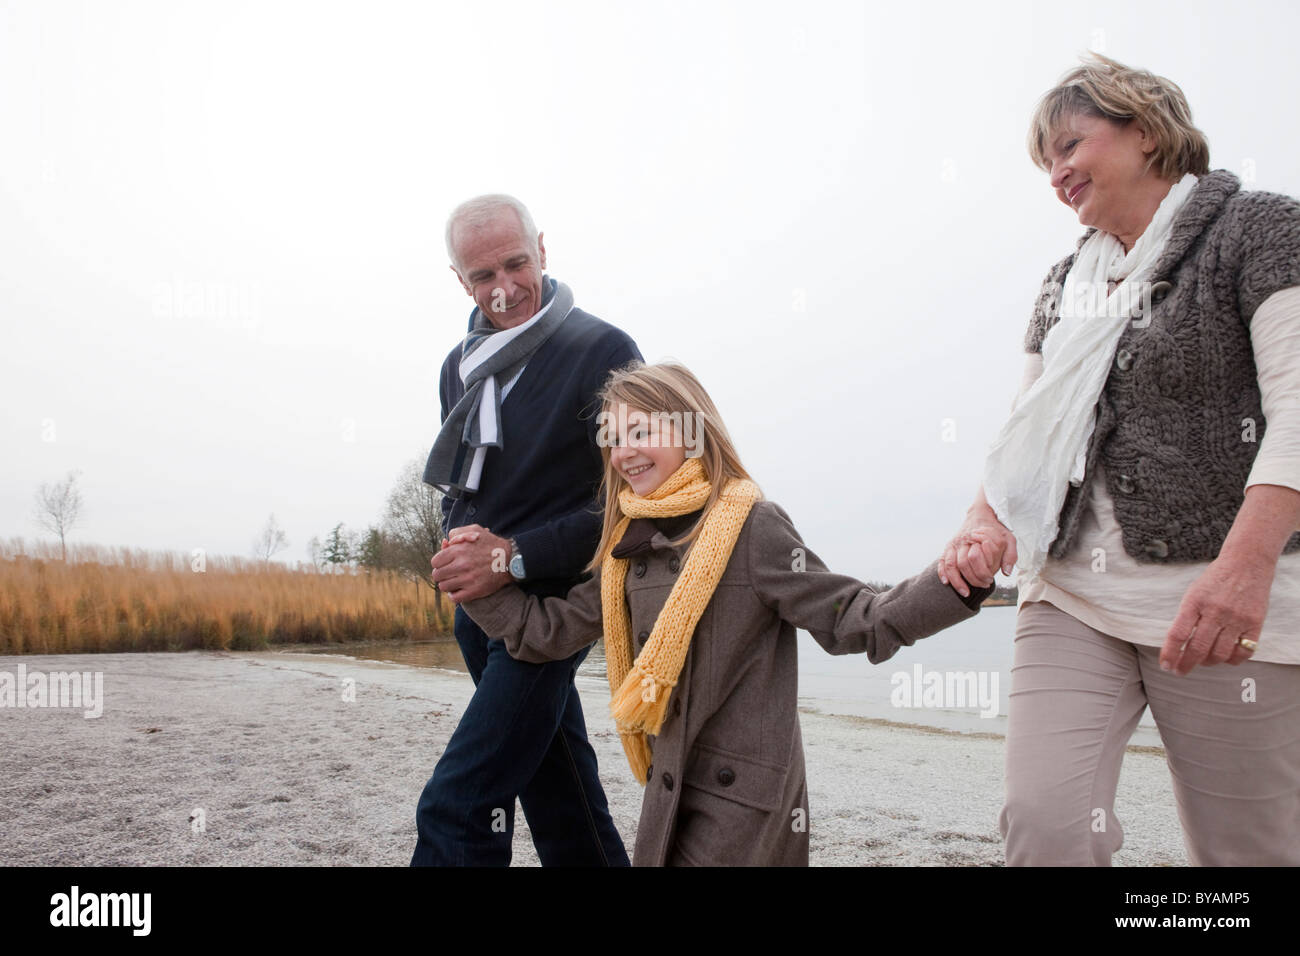 Grandparents and girl walking by lake - Stock Image